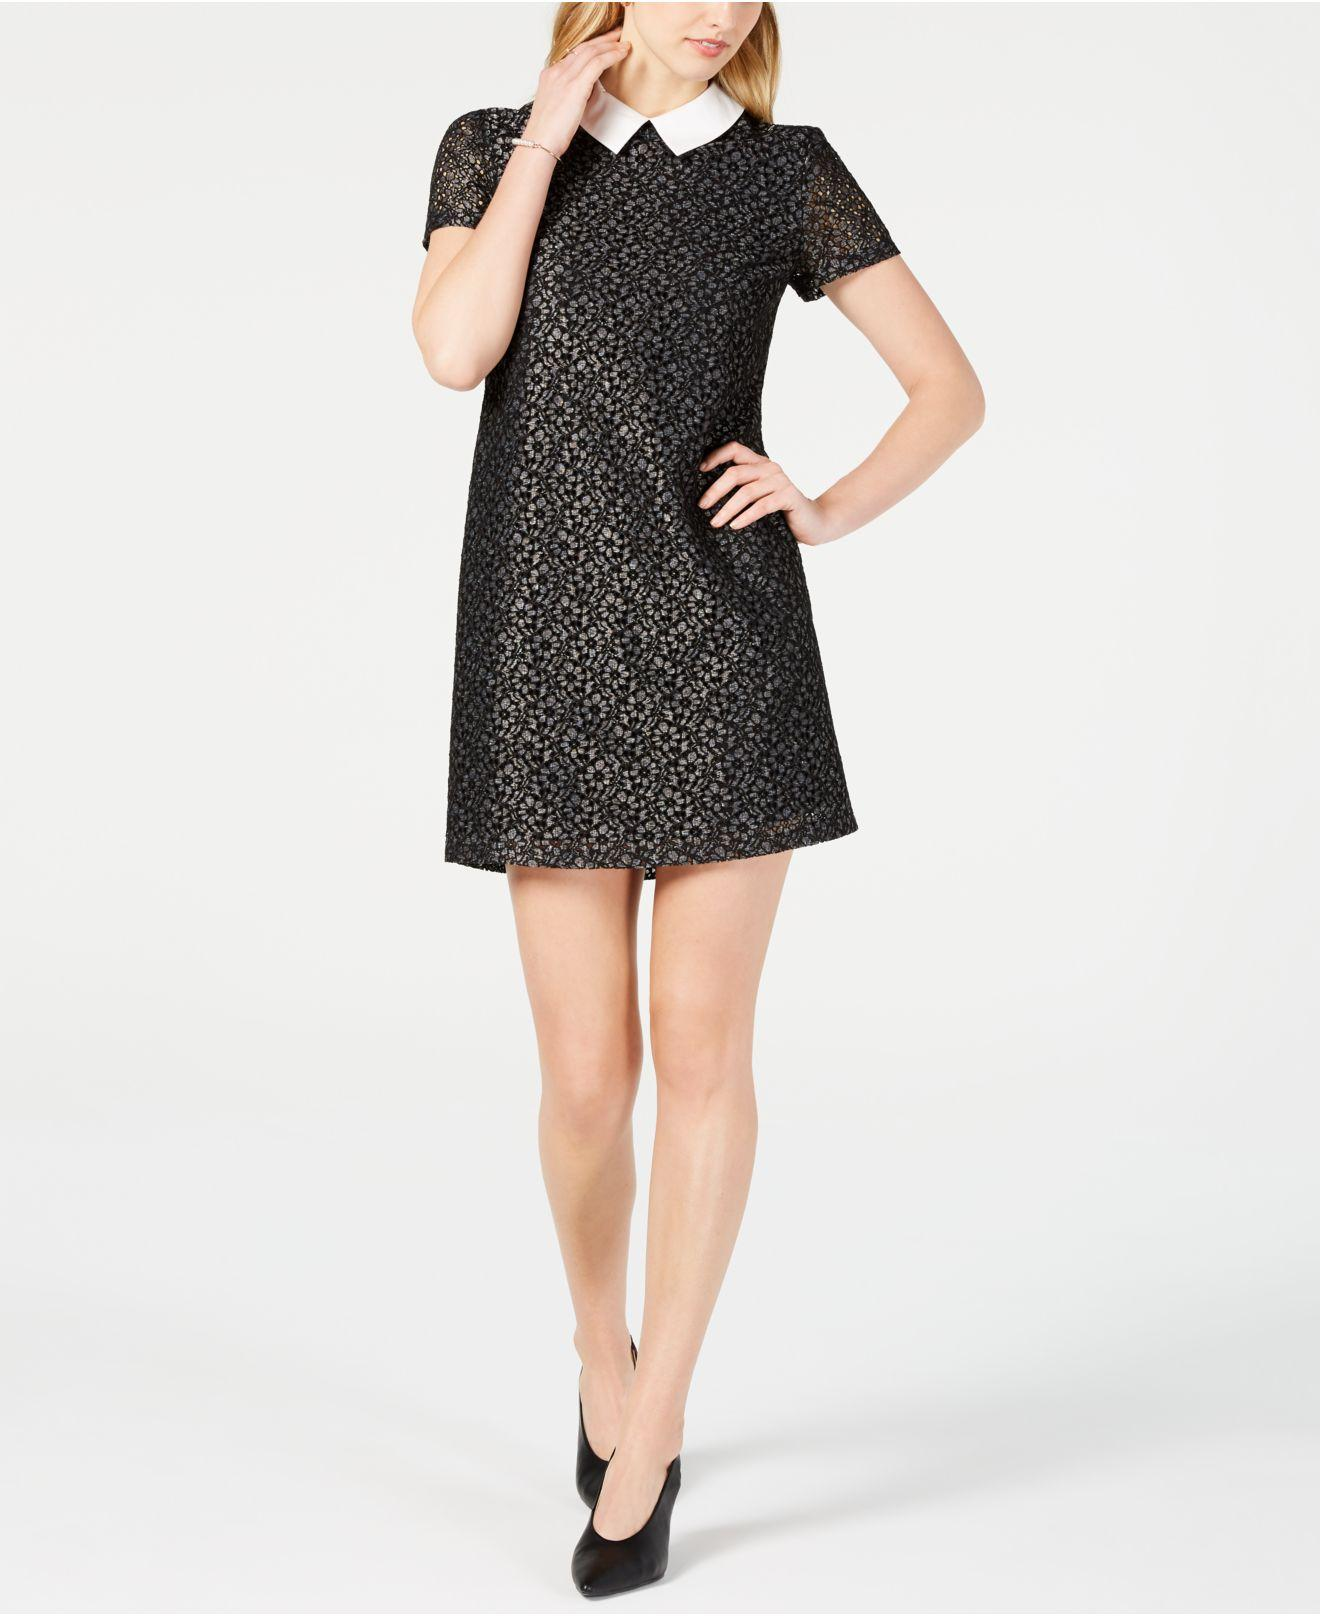 4a40f82825b6 Lyst - Maison Jules Collared Lace Shift Dress